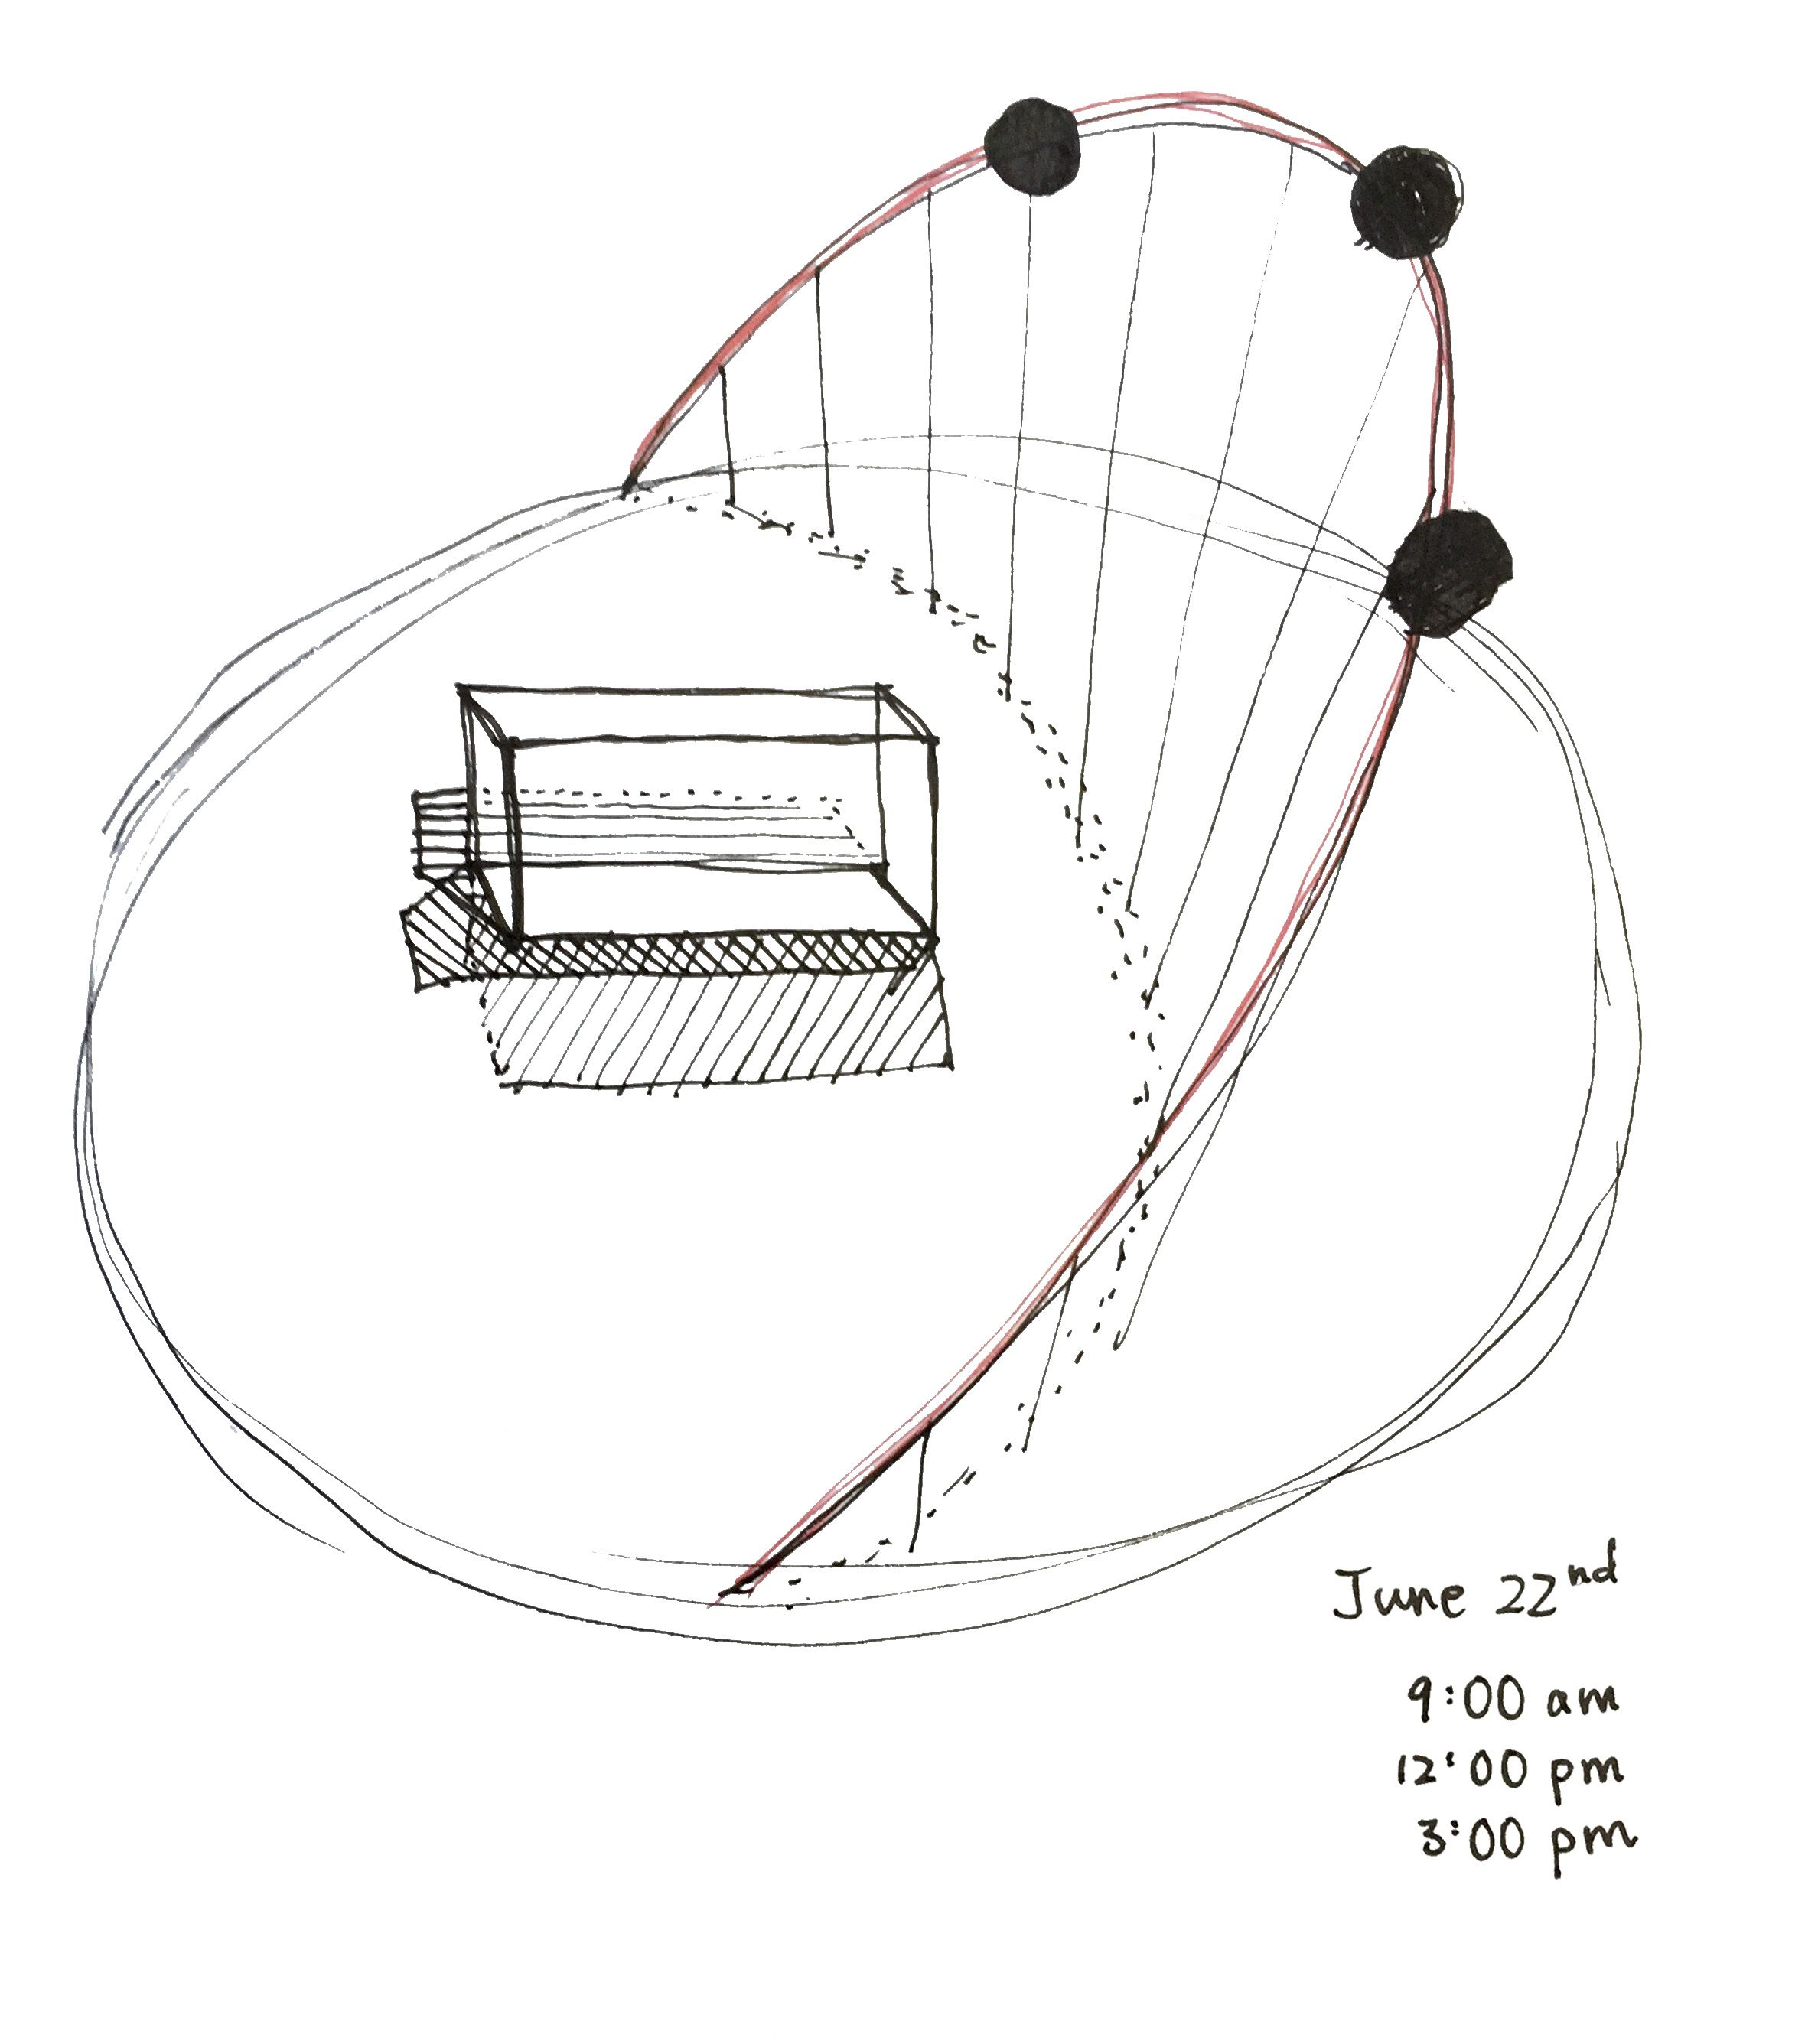 small resolution of university of versailles science library diagram of sun path in june kellyli 48105 s15